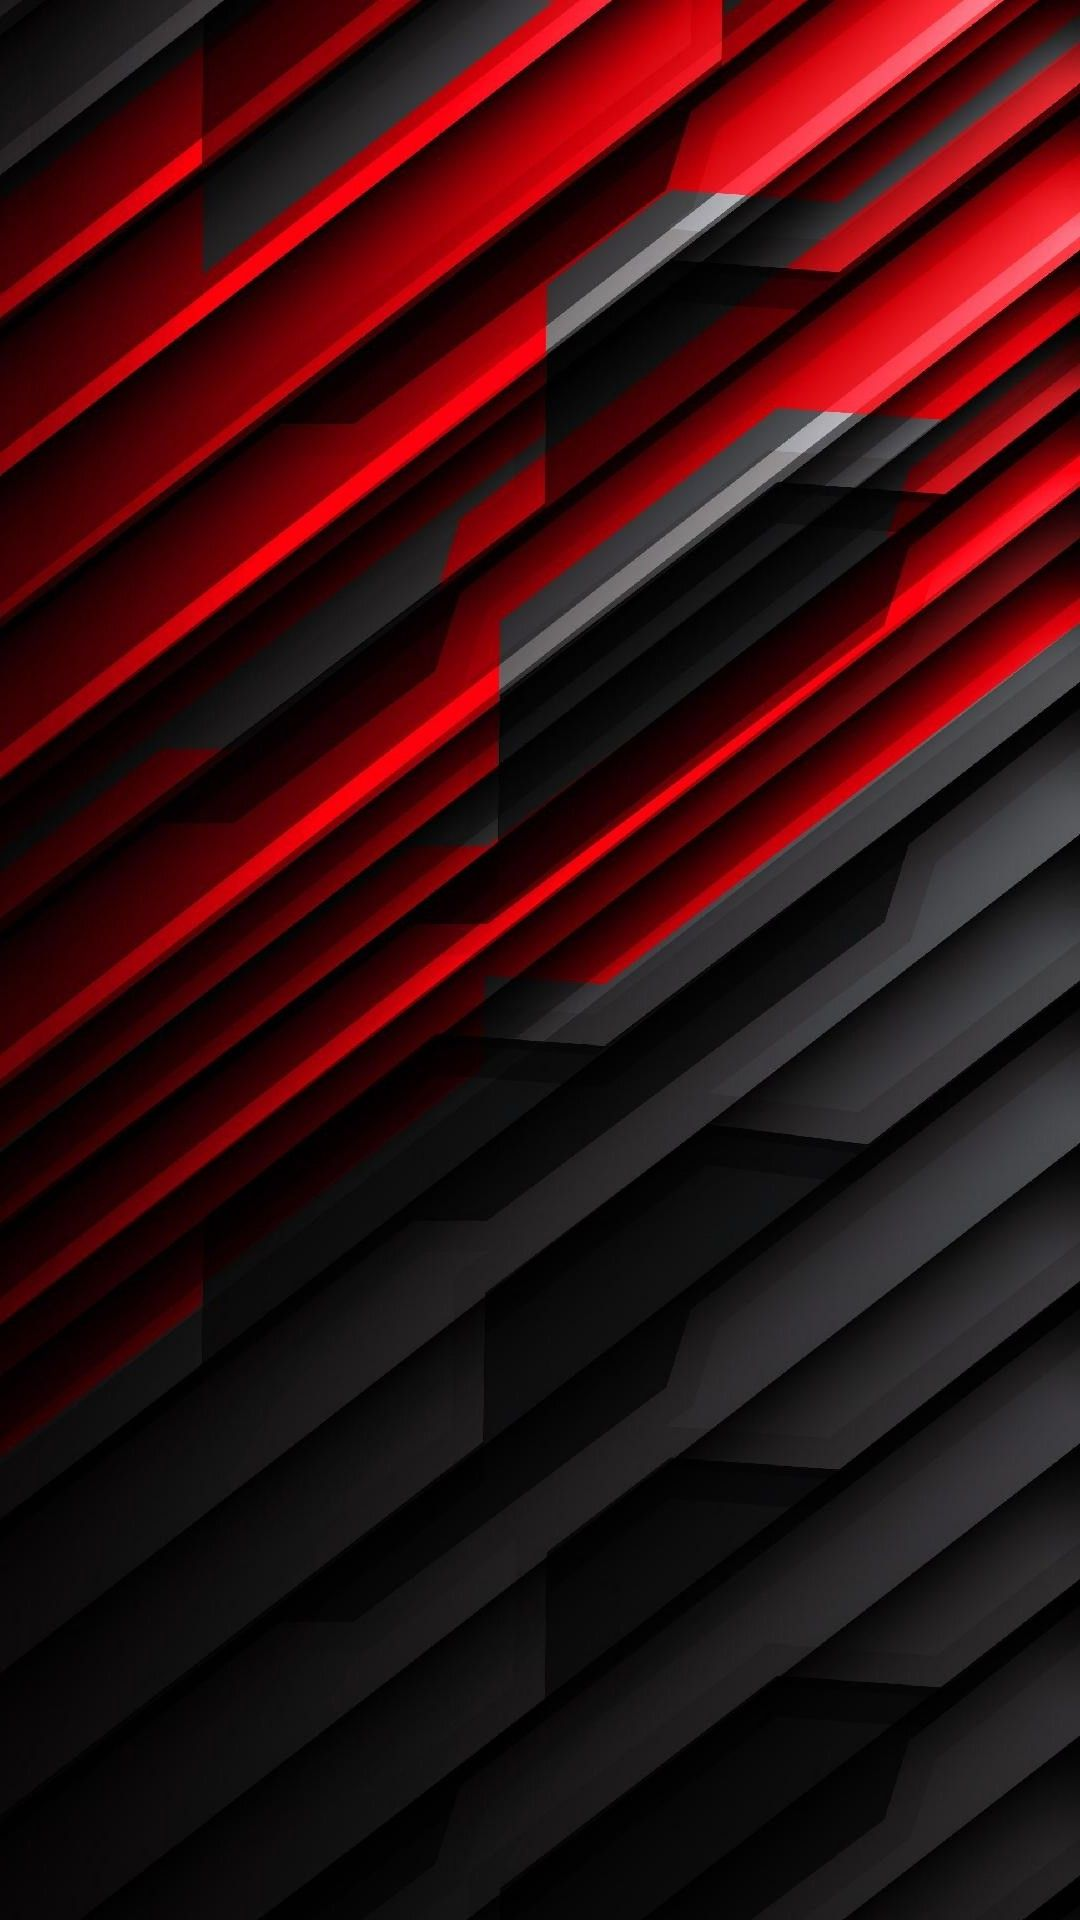 Download Best Abstract Phone Wallpaper HD 2020 by Uploaded by user